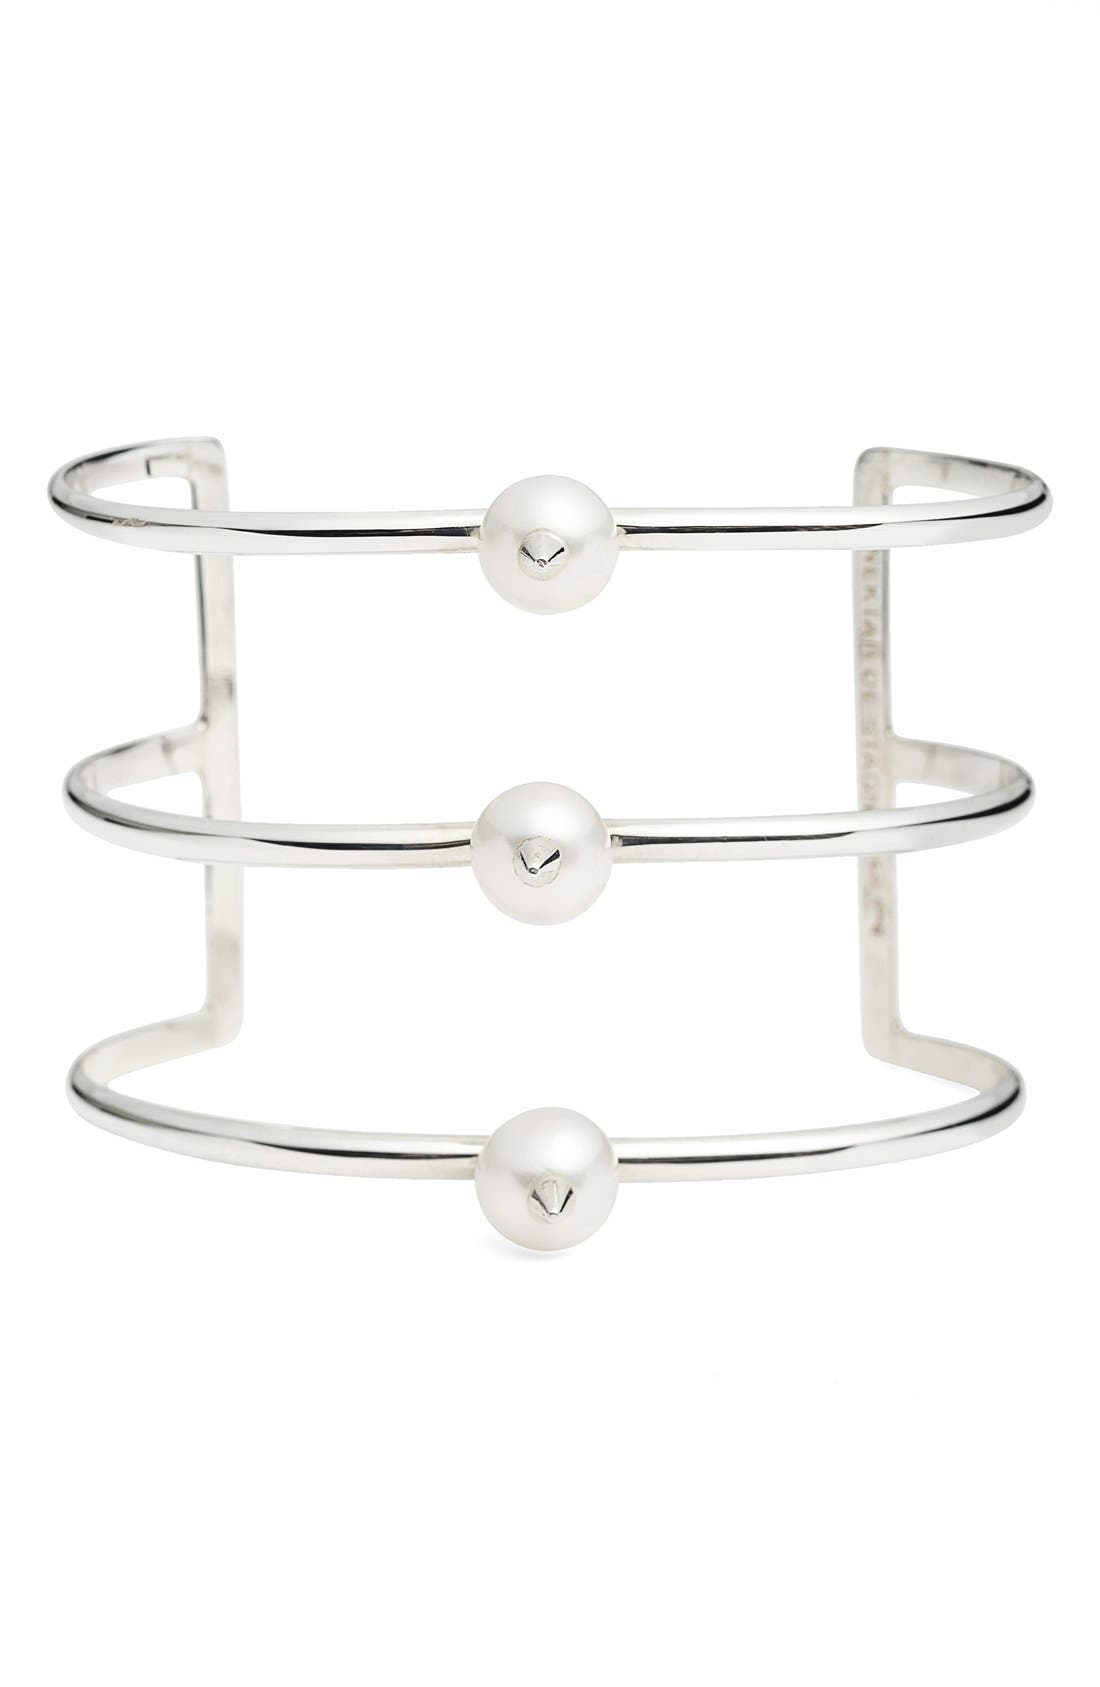 Alternate Image 1 Selected - Nektar de Stagni 'New Classics' Spike Cultured Pearl Triple Row Cuff